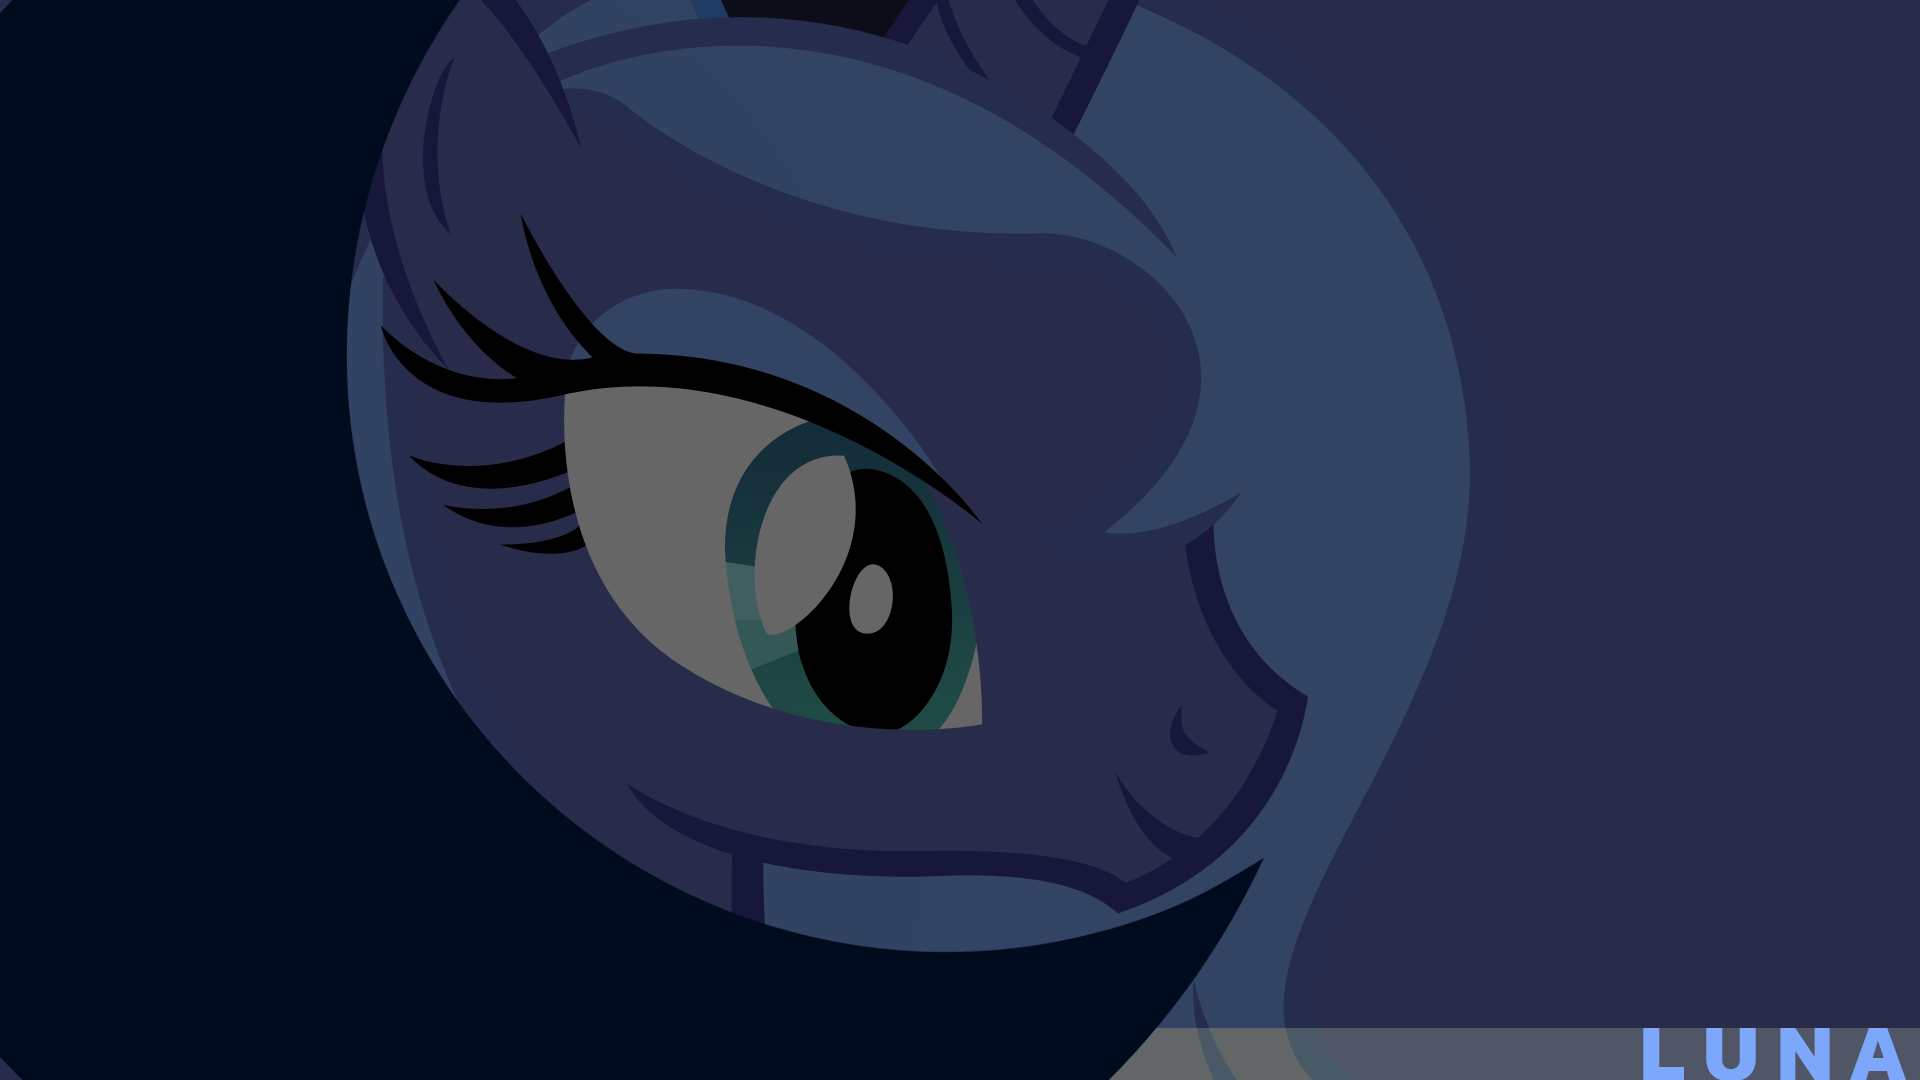 Luna - Minimal Dark by Elalition